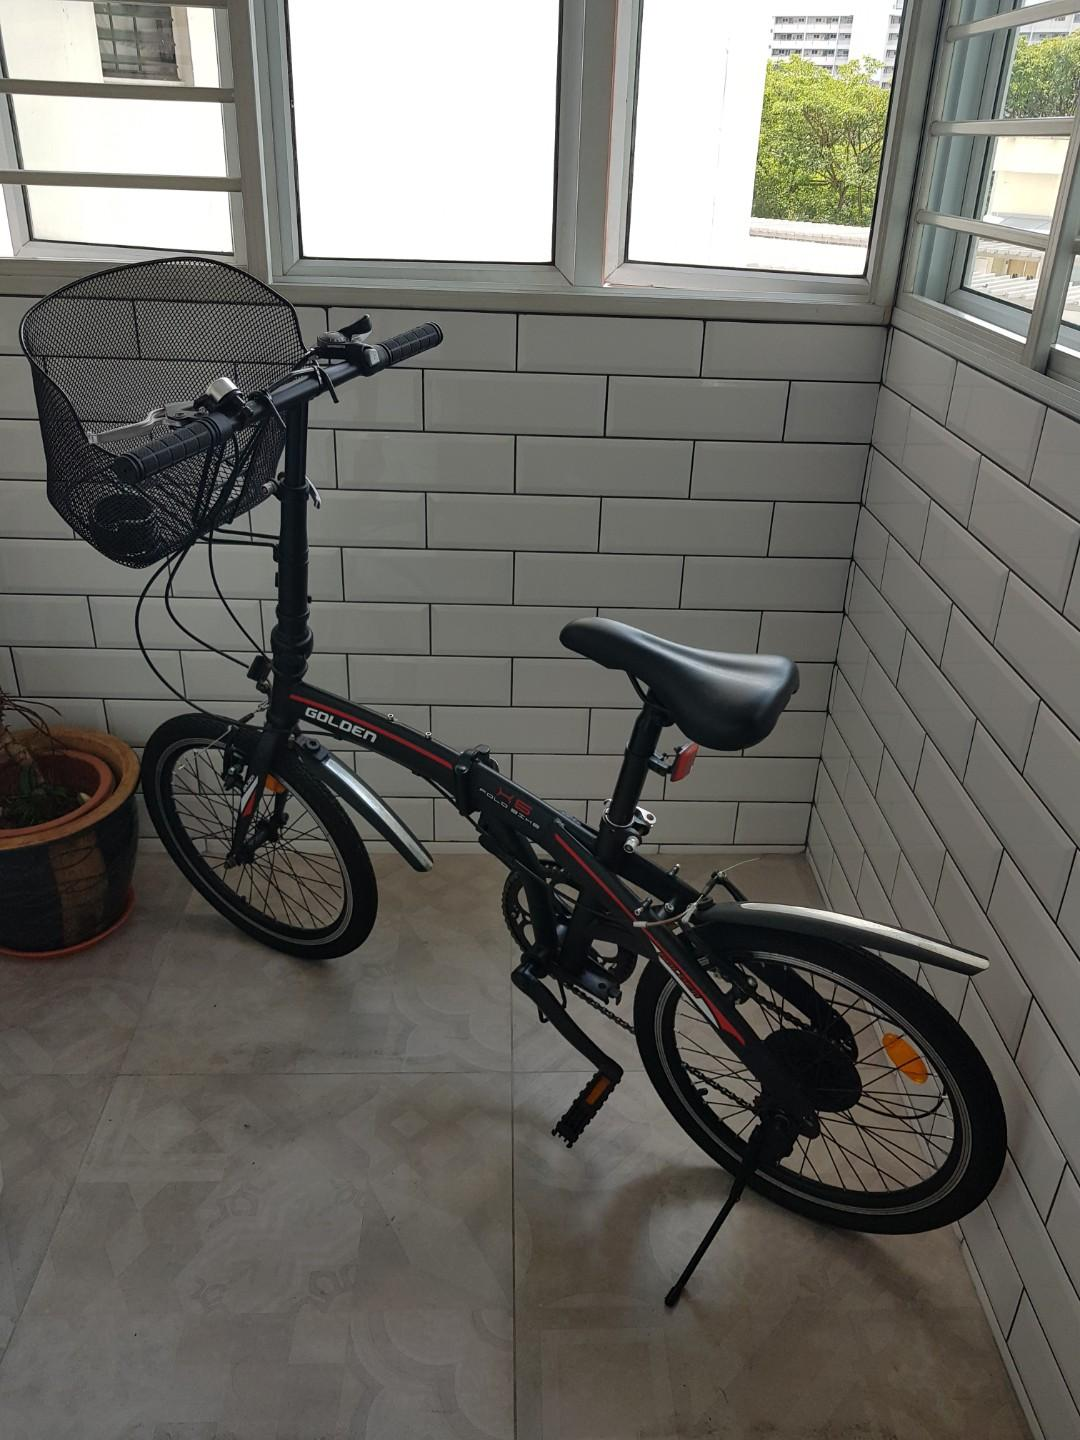 Second hand foldable bicycle for sale, Bicycles & PMDs